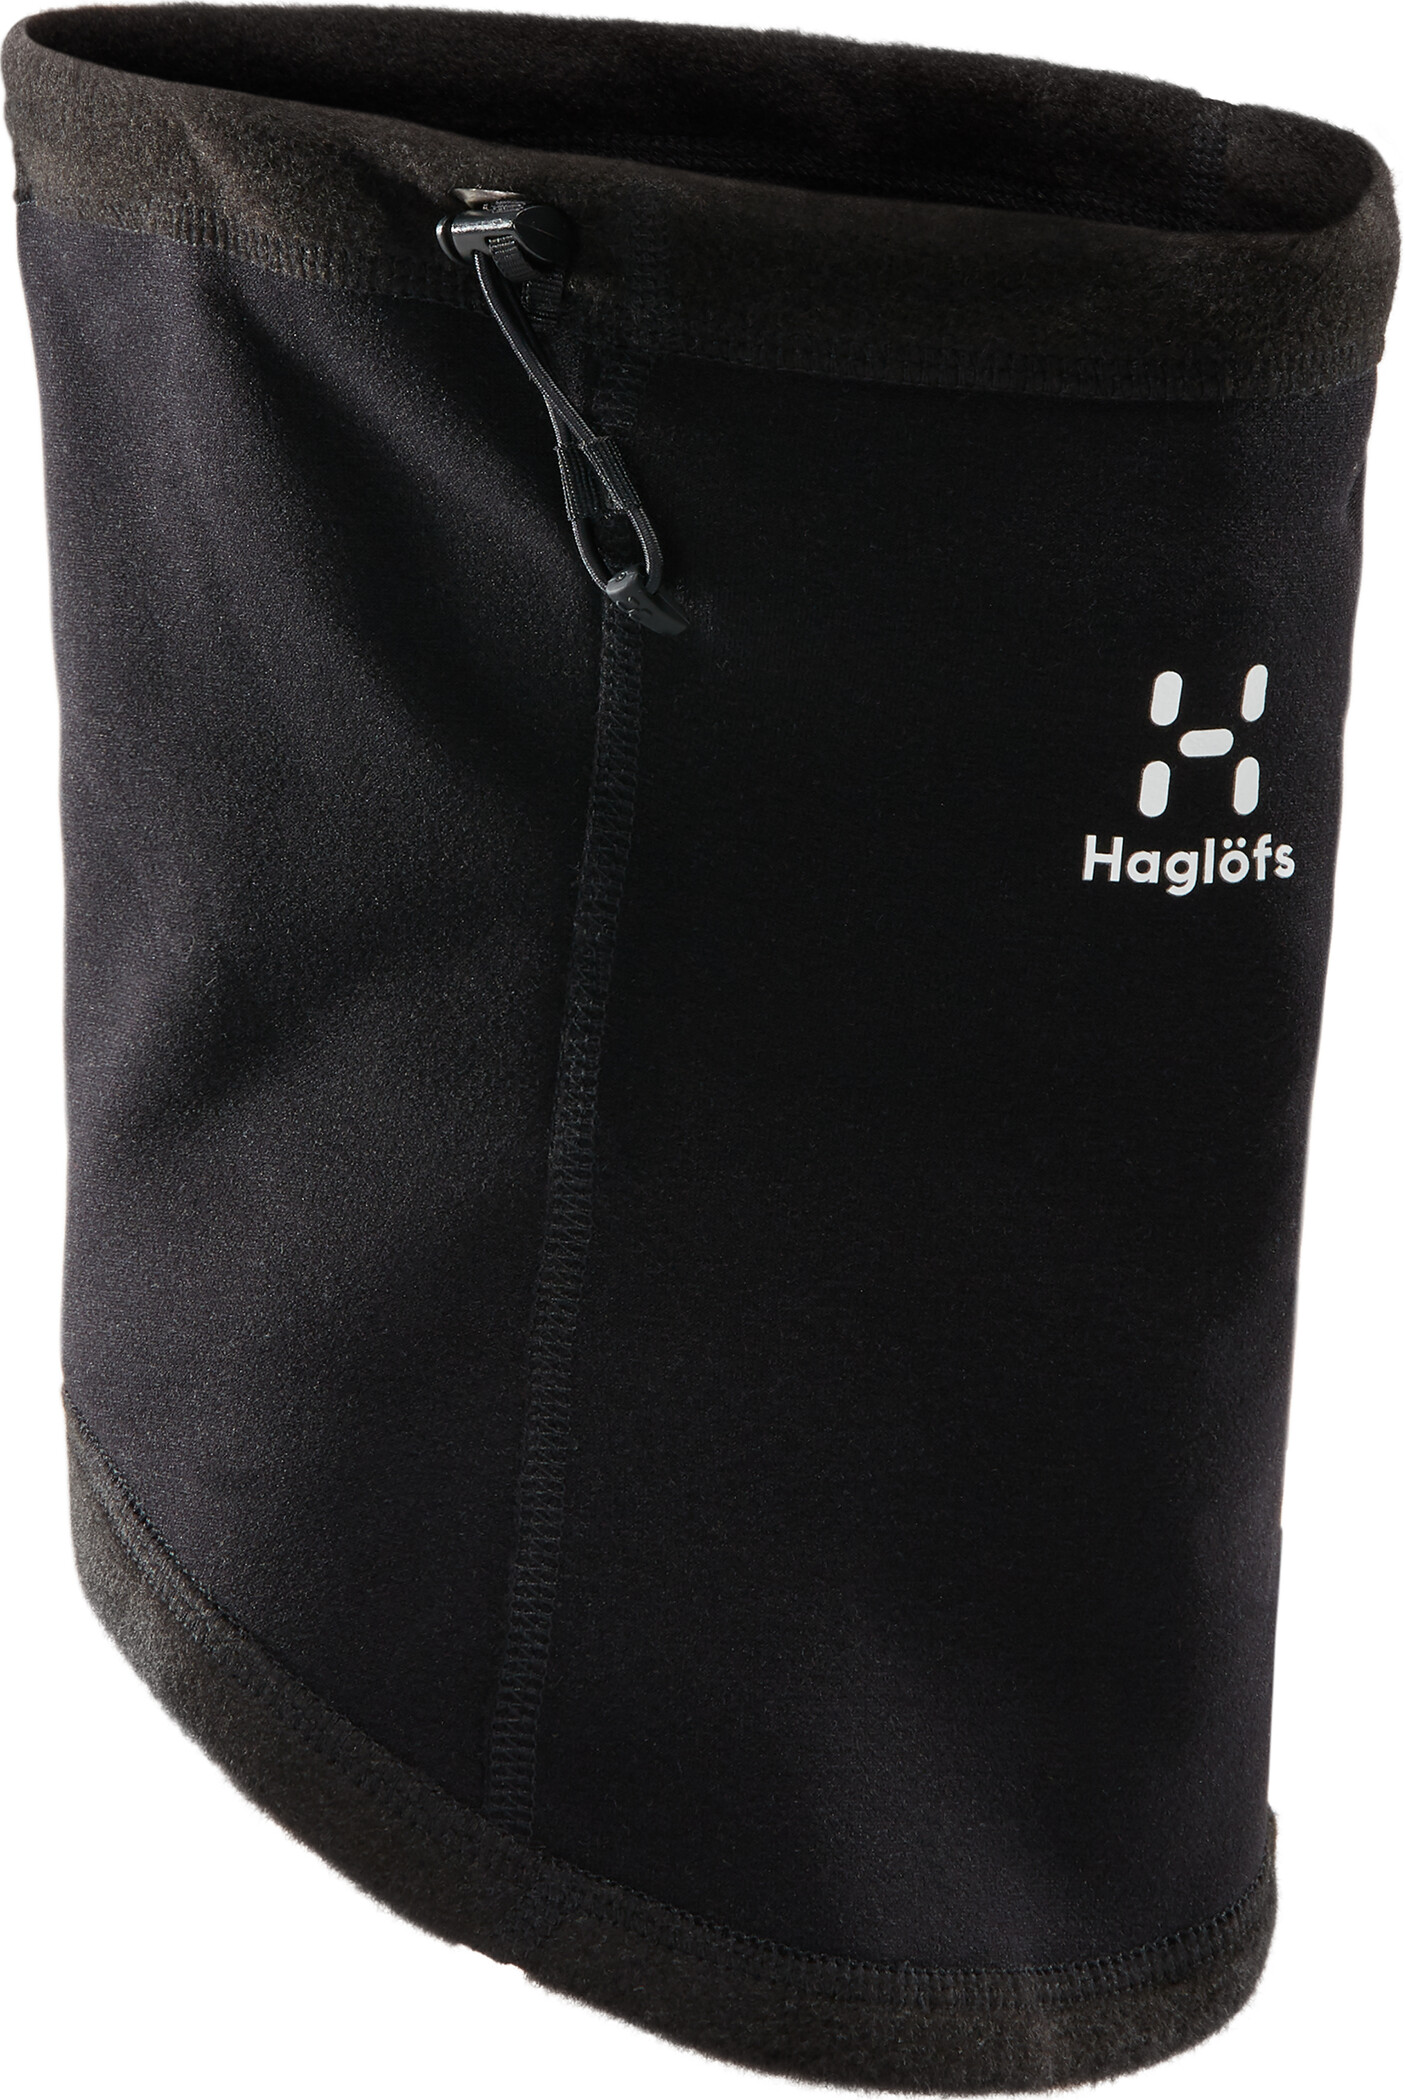 Haglöfs Neck Gaiter, true black (2019) | Headwear